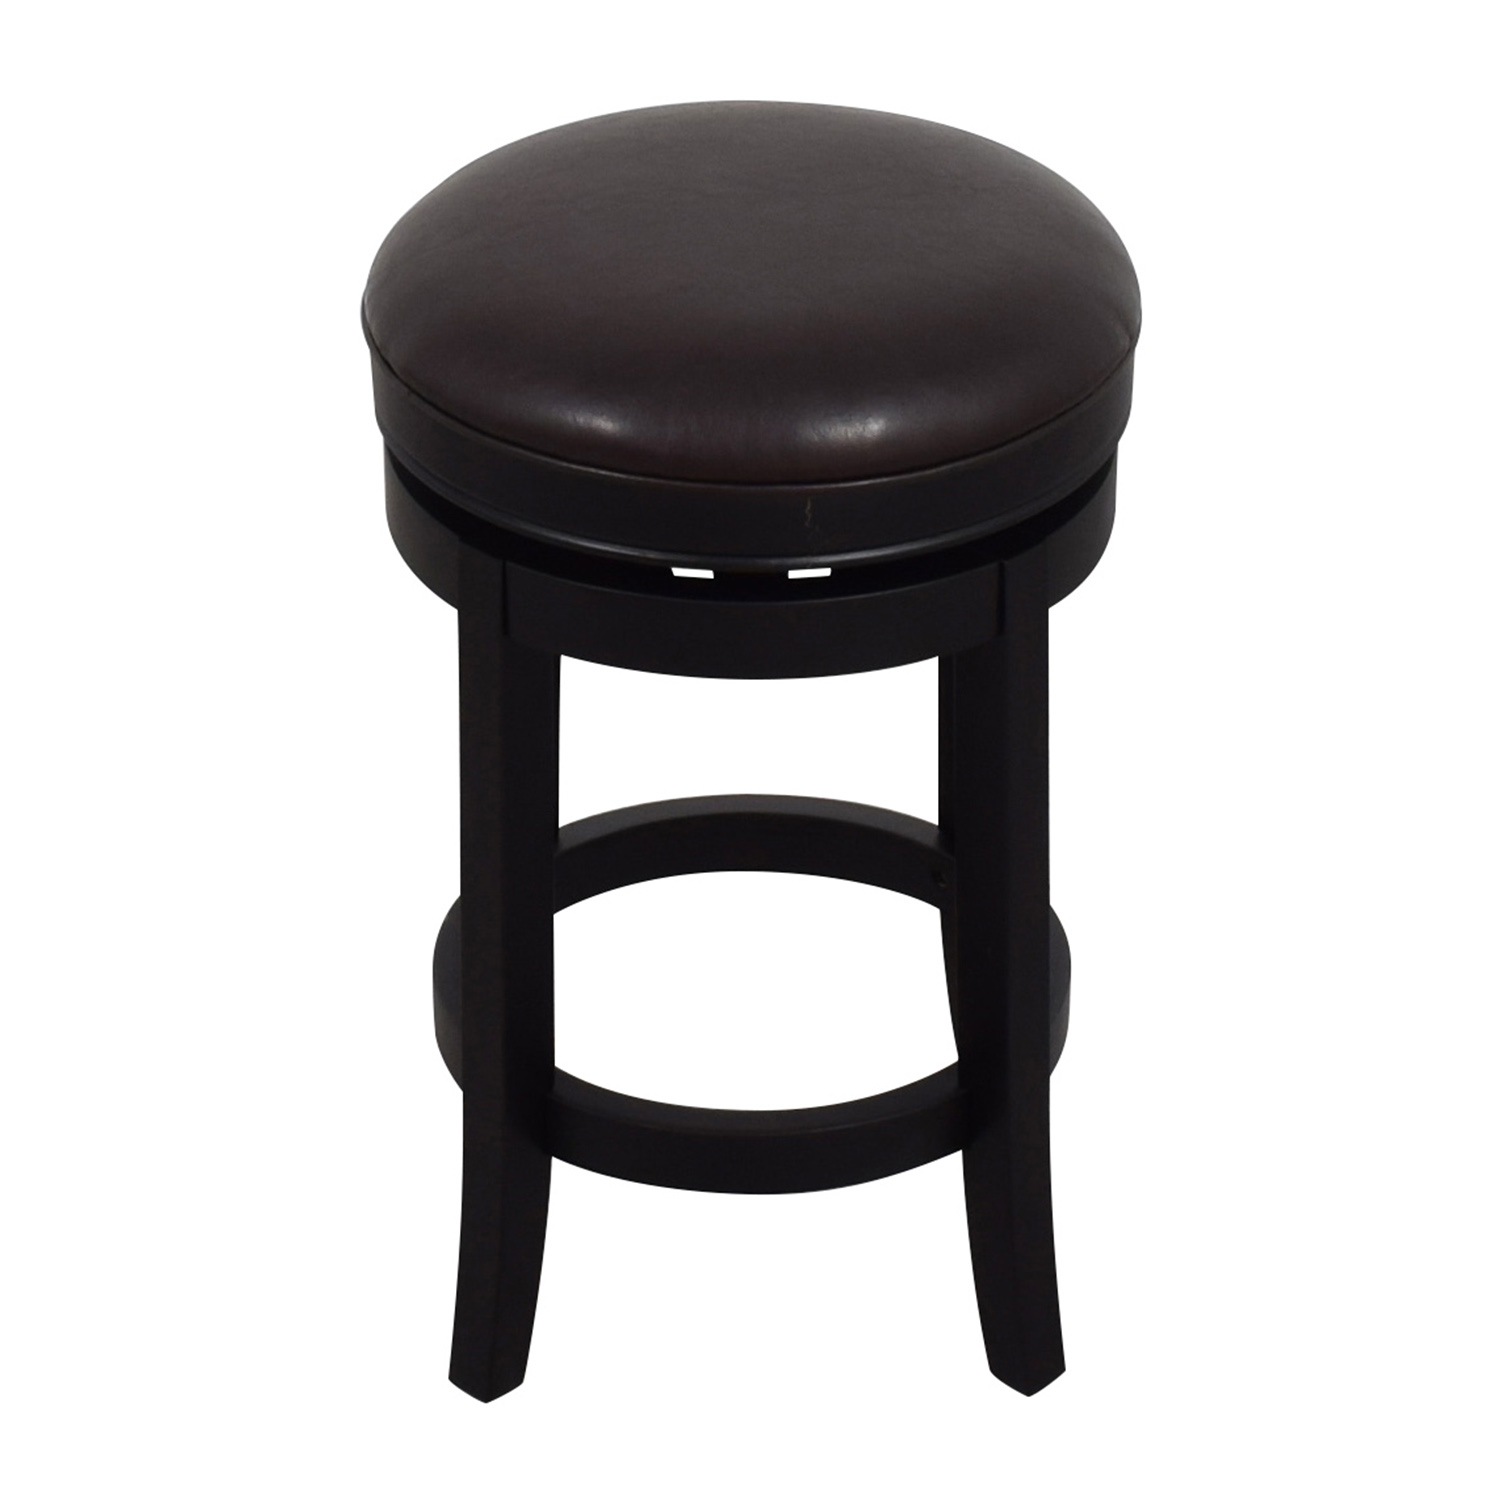 InMod InMod Cedric Round Backless Bar Stool Chairs